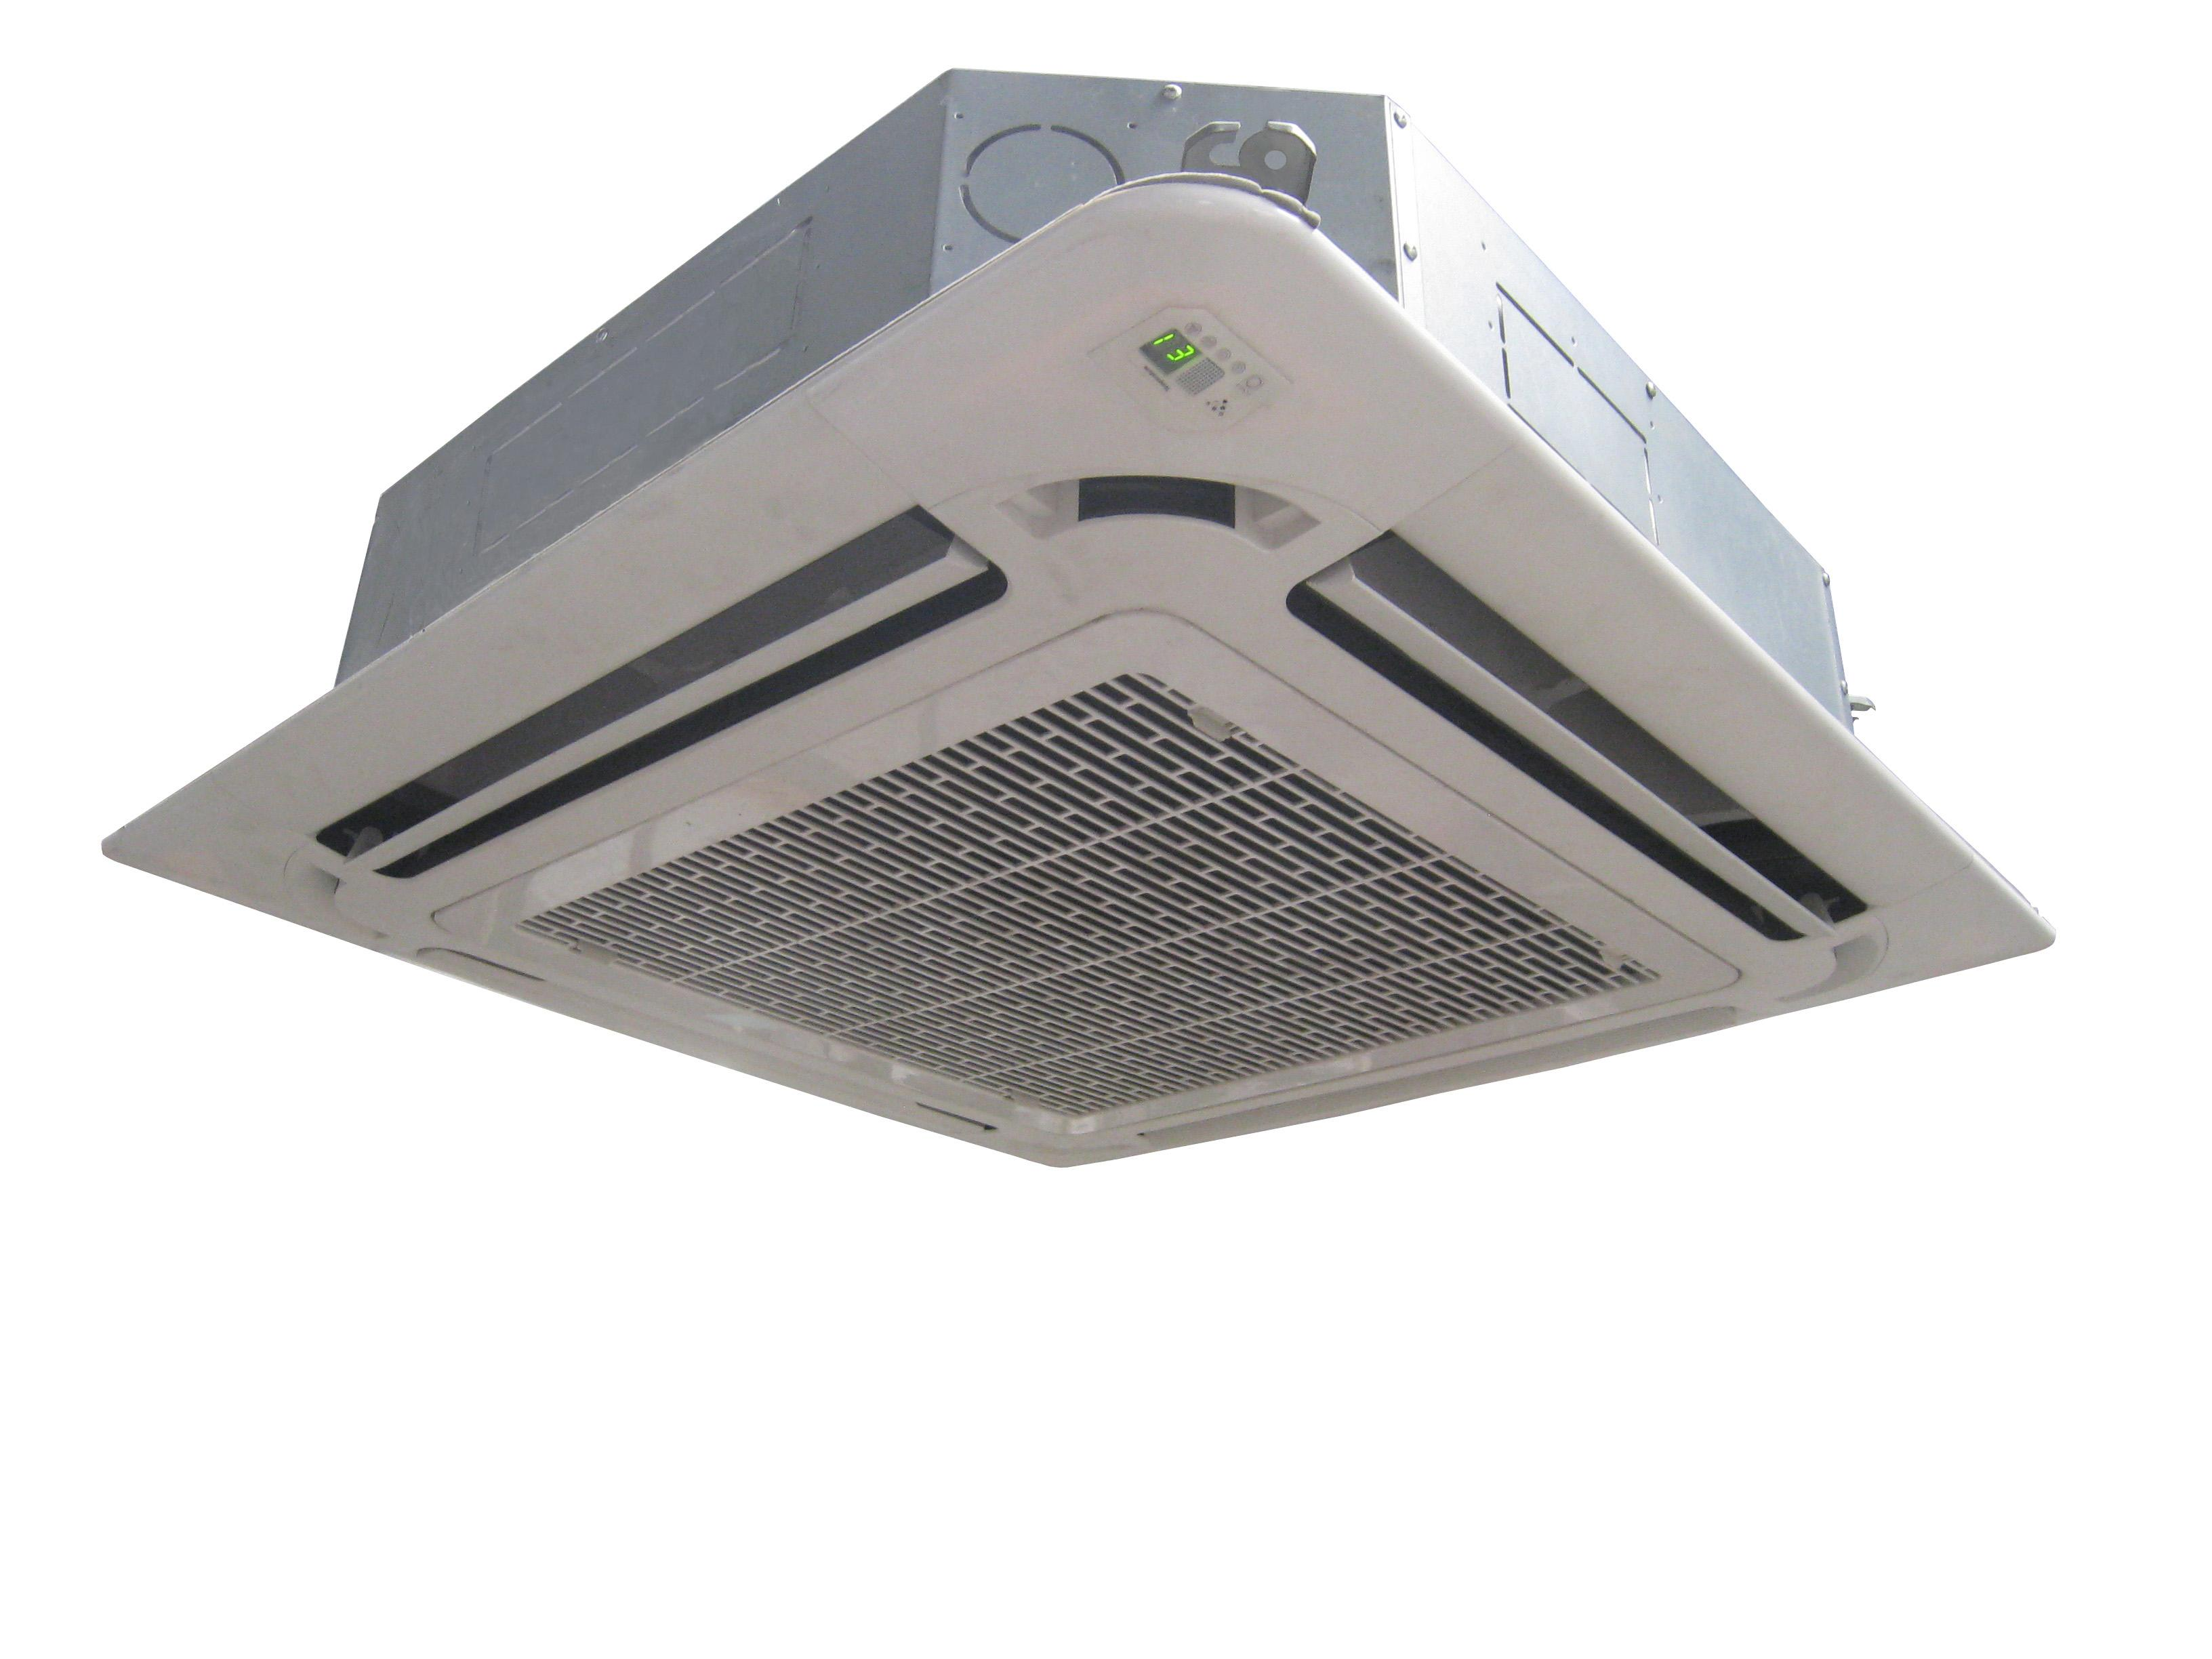 conditioner cassette fan type air suppliers product unit coil china nszmkcwrlrvj conditioning ceiling price